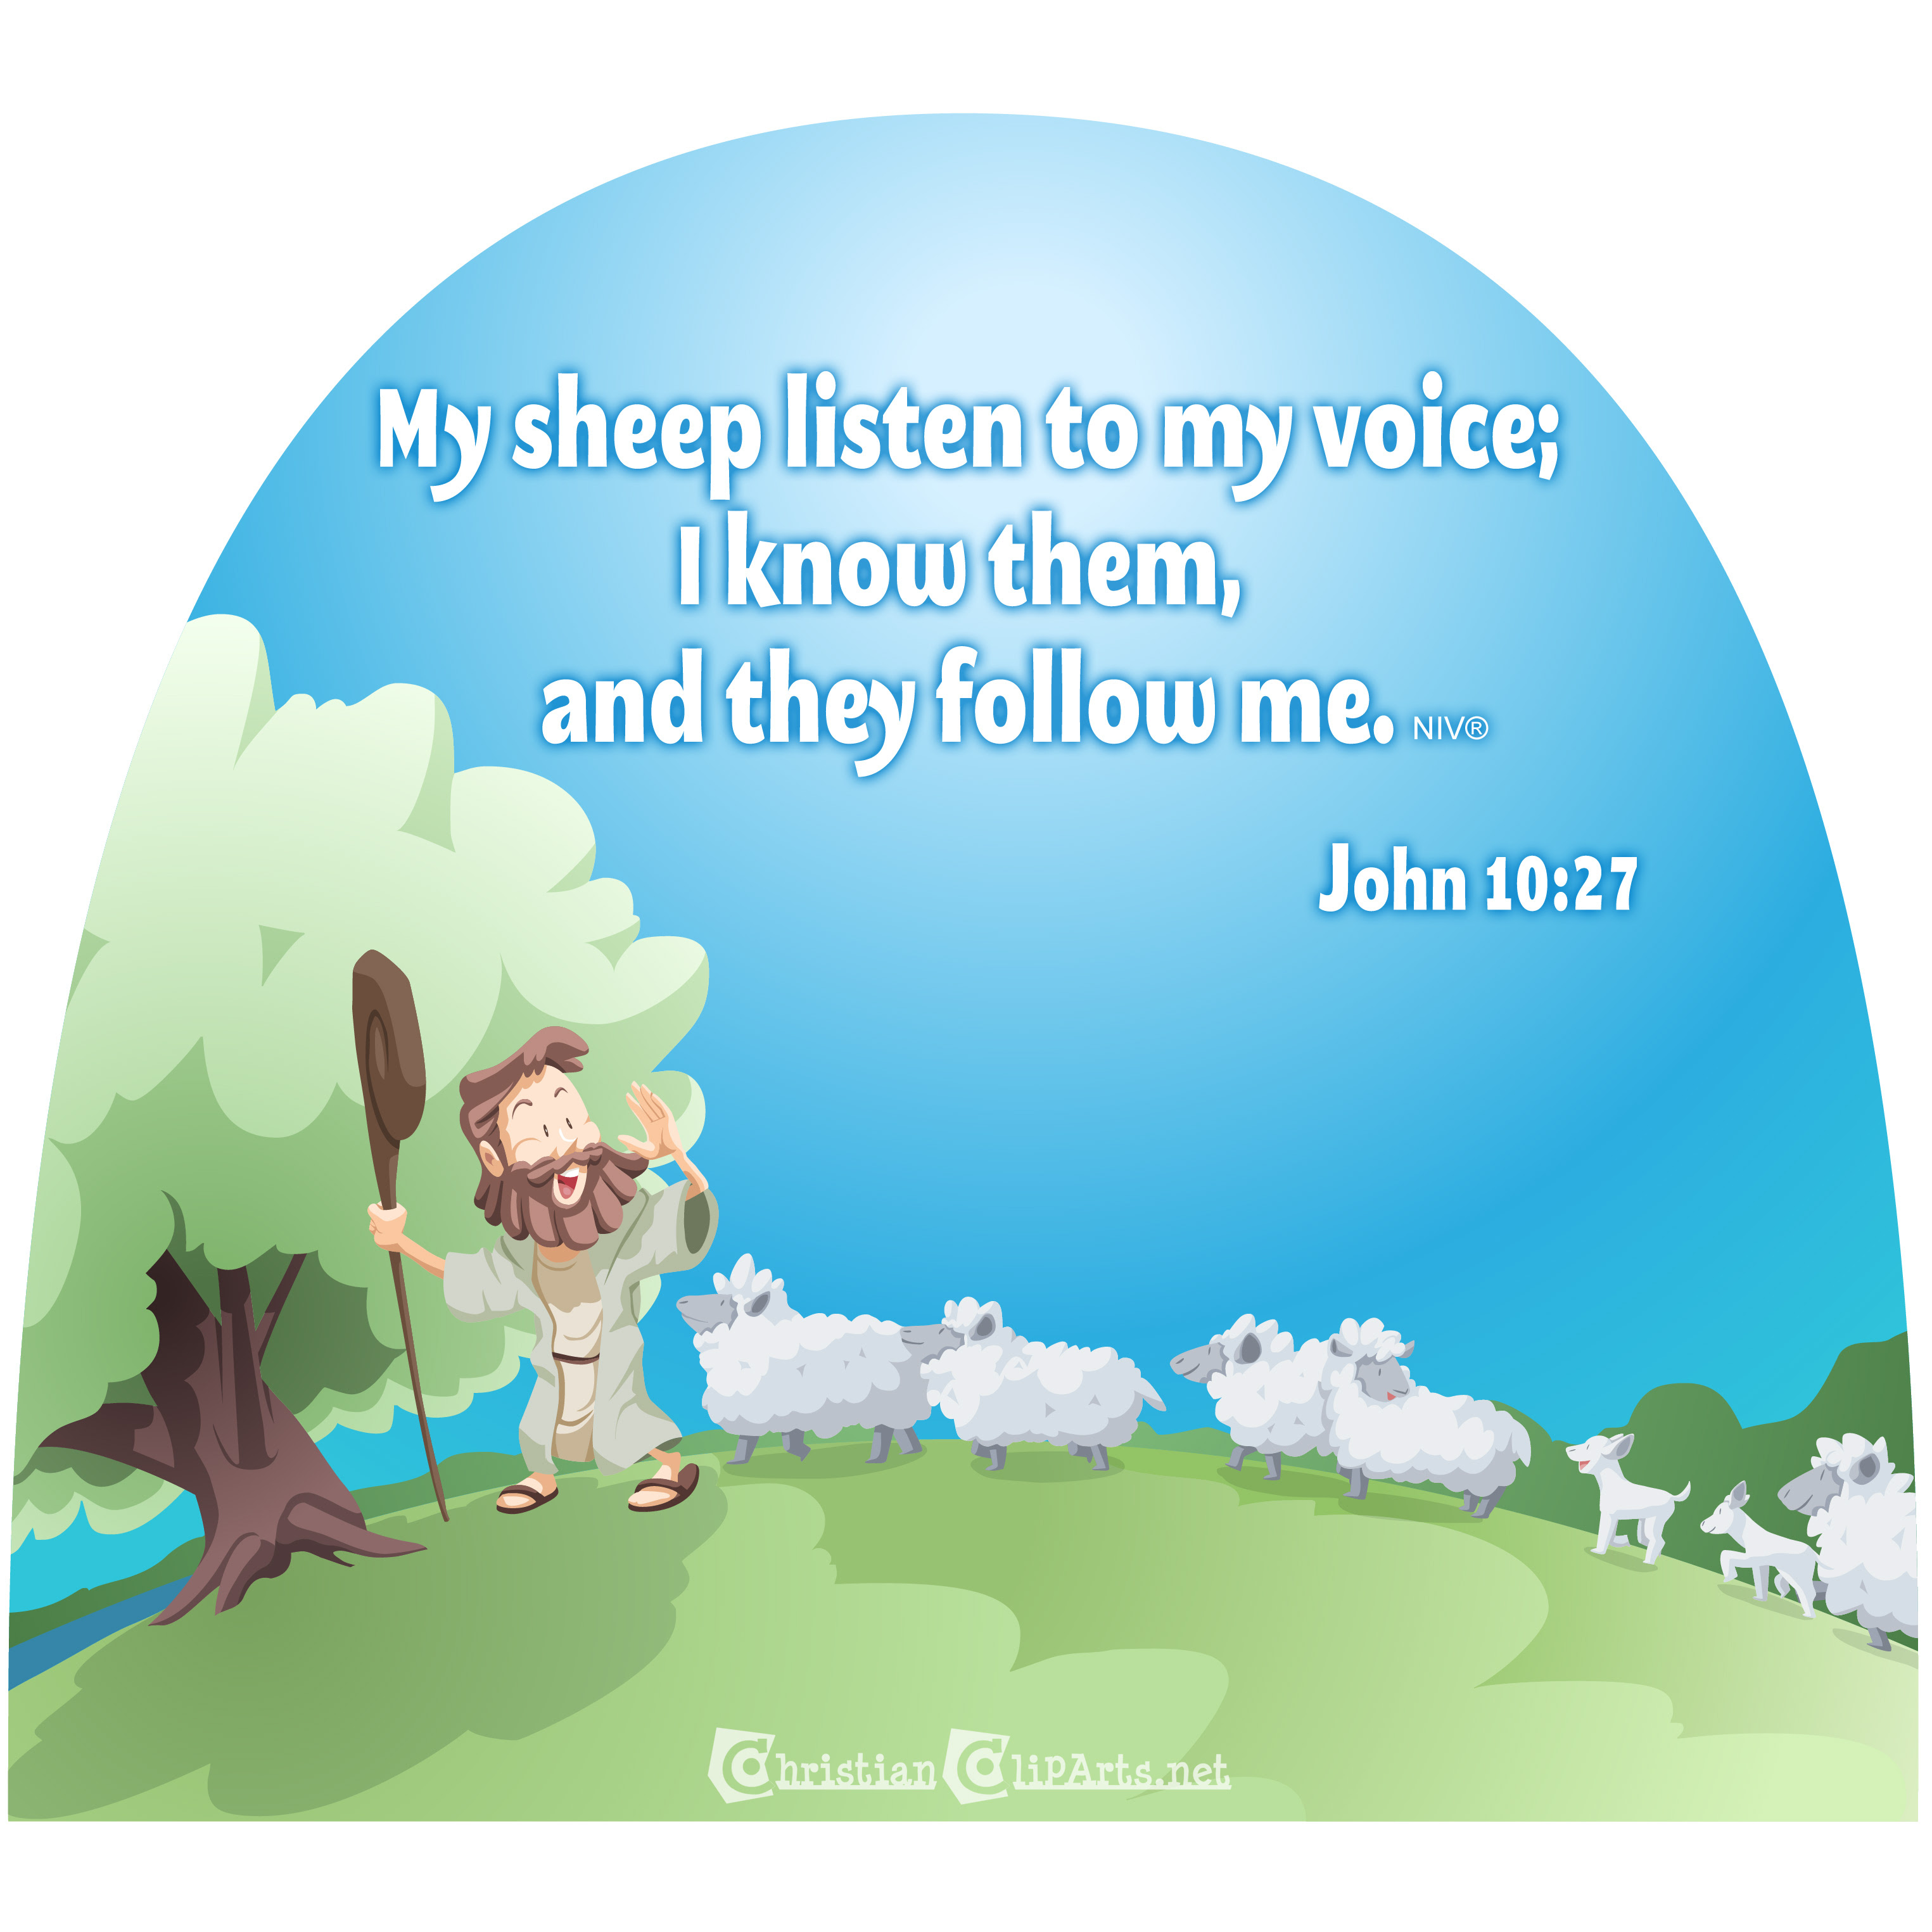 My sheep listen to my voice